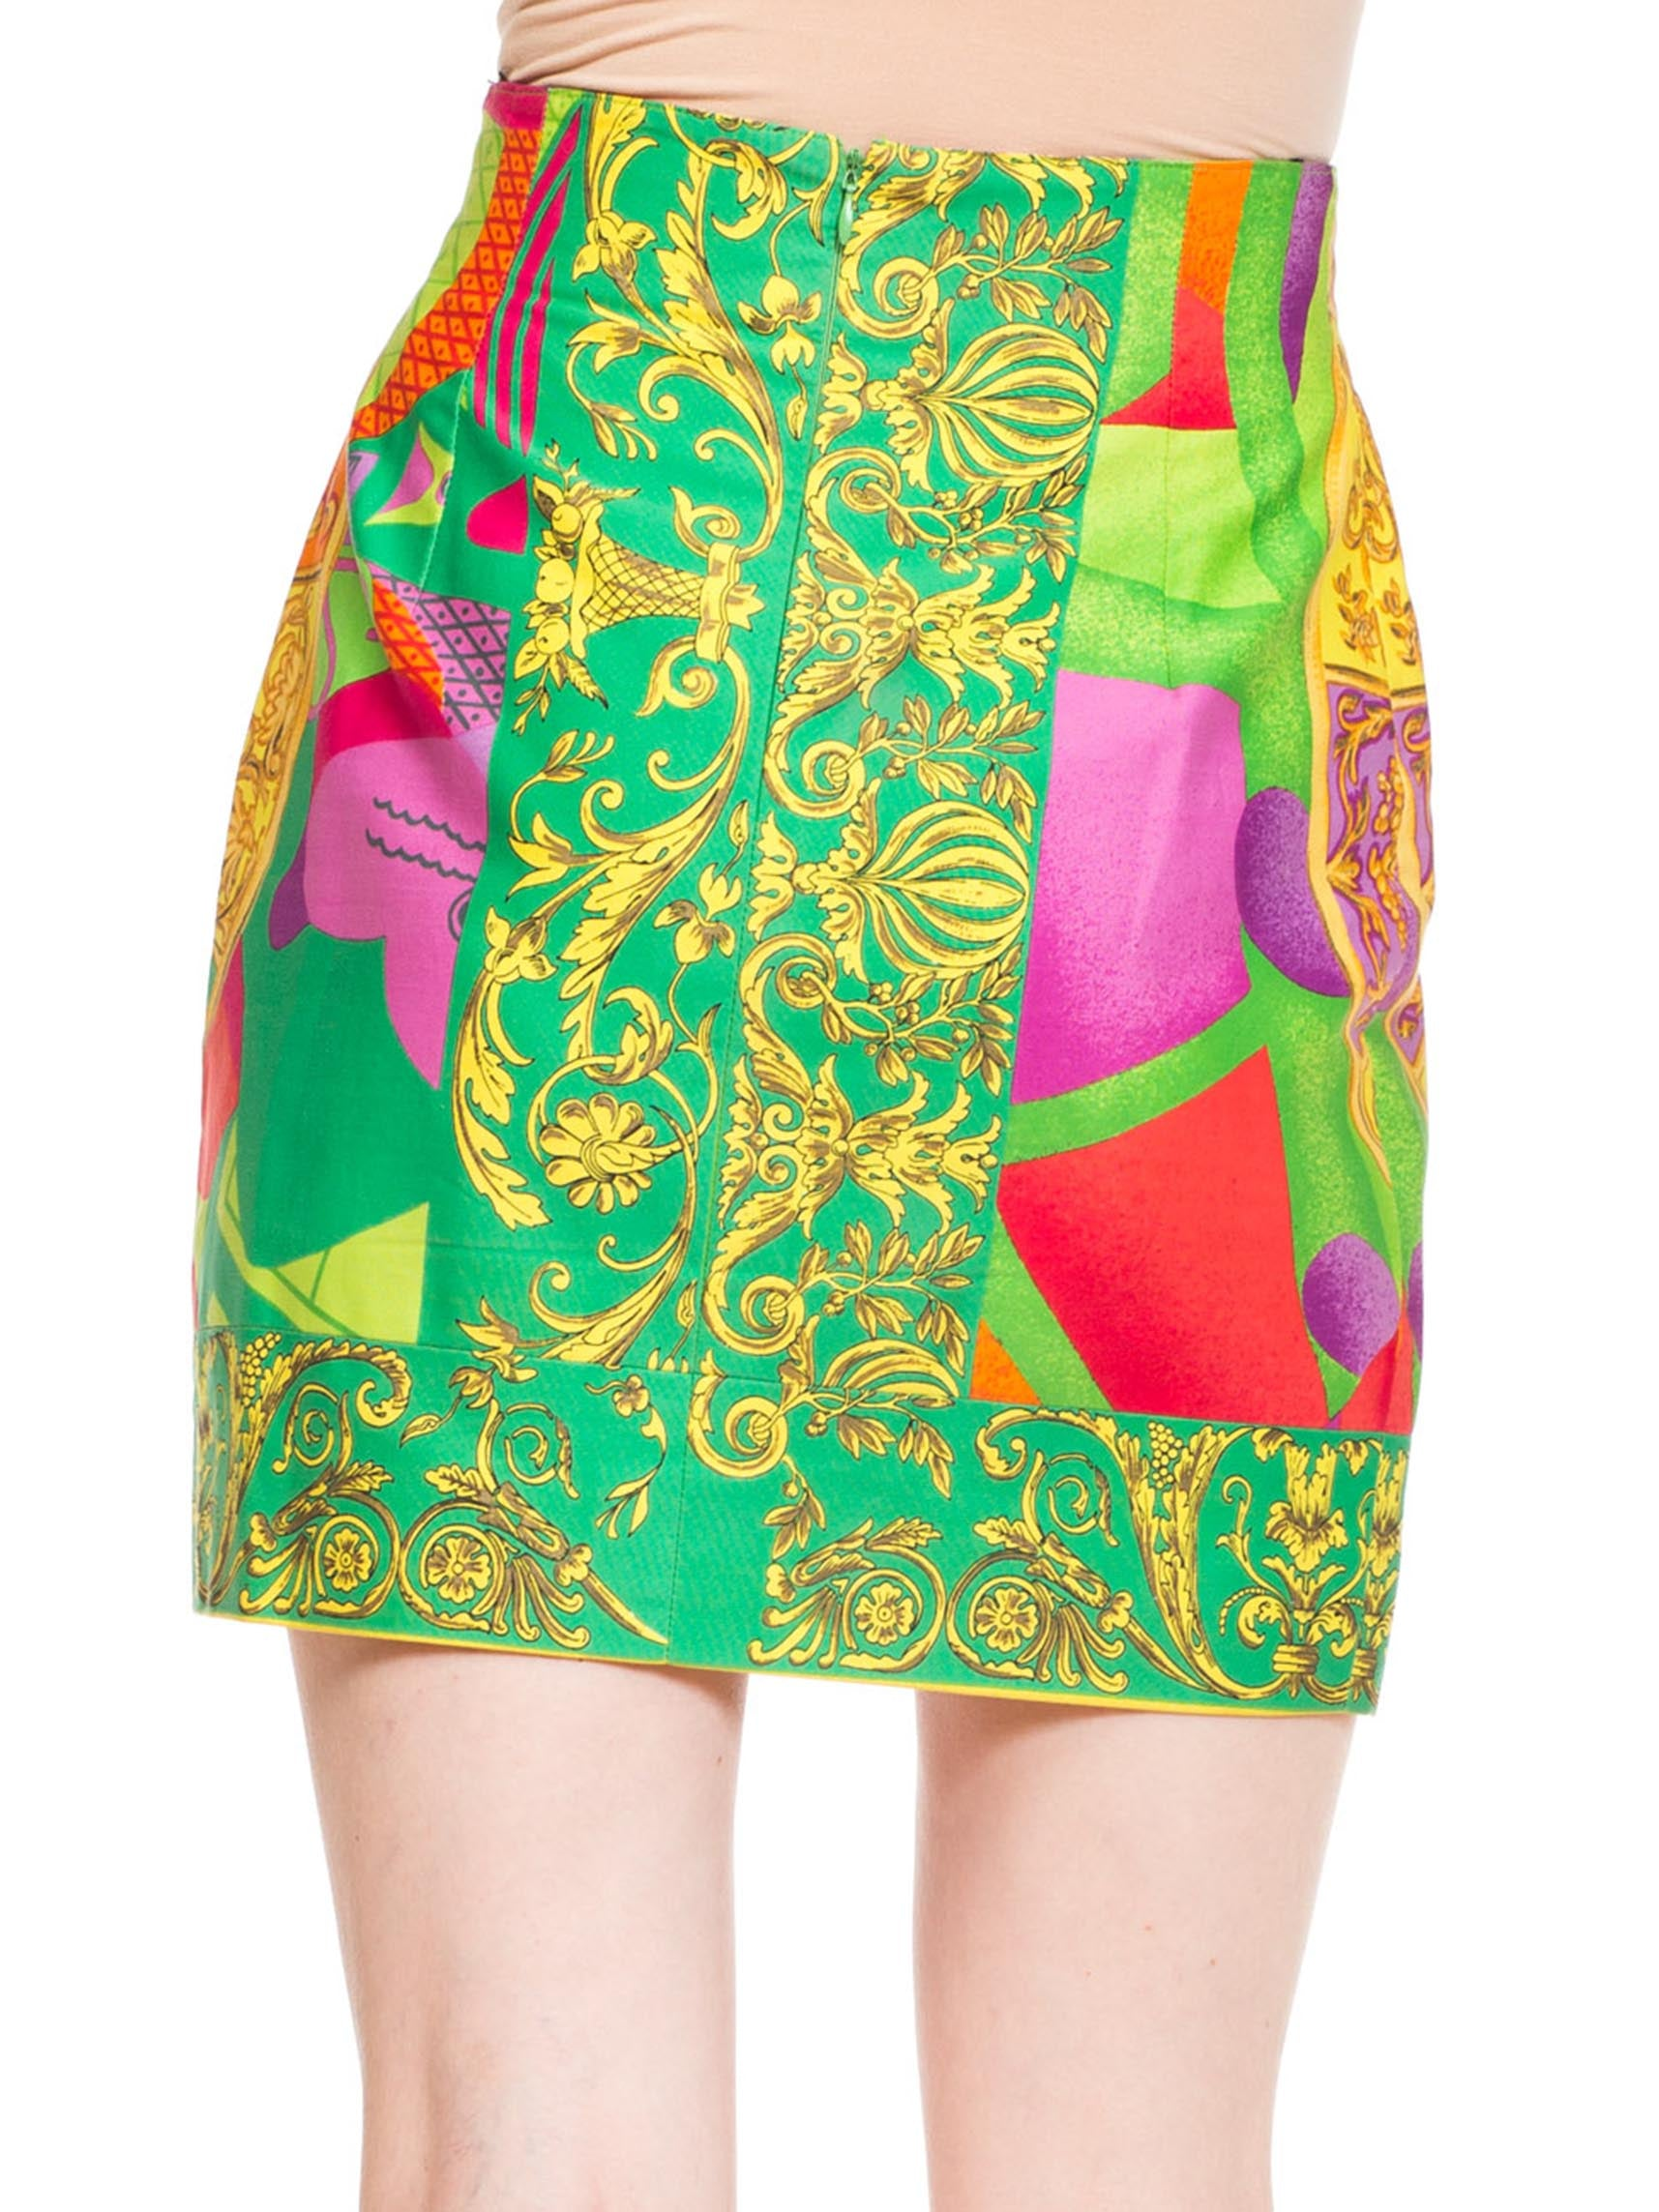 1990S GIANNI VERSACE Bright Multicolor Cotton Baroque Printed High-Waisted Mini Skirt